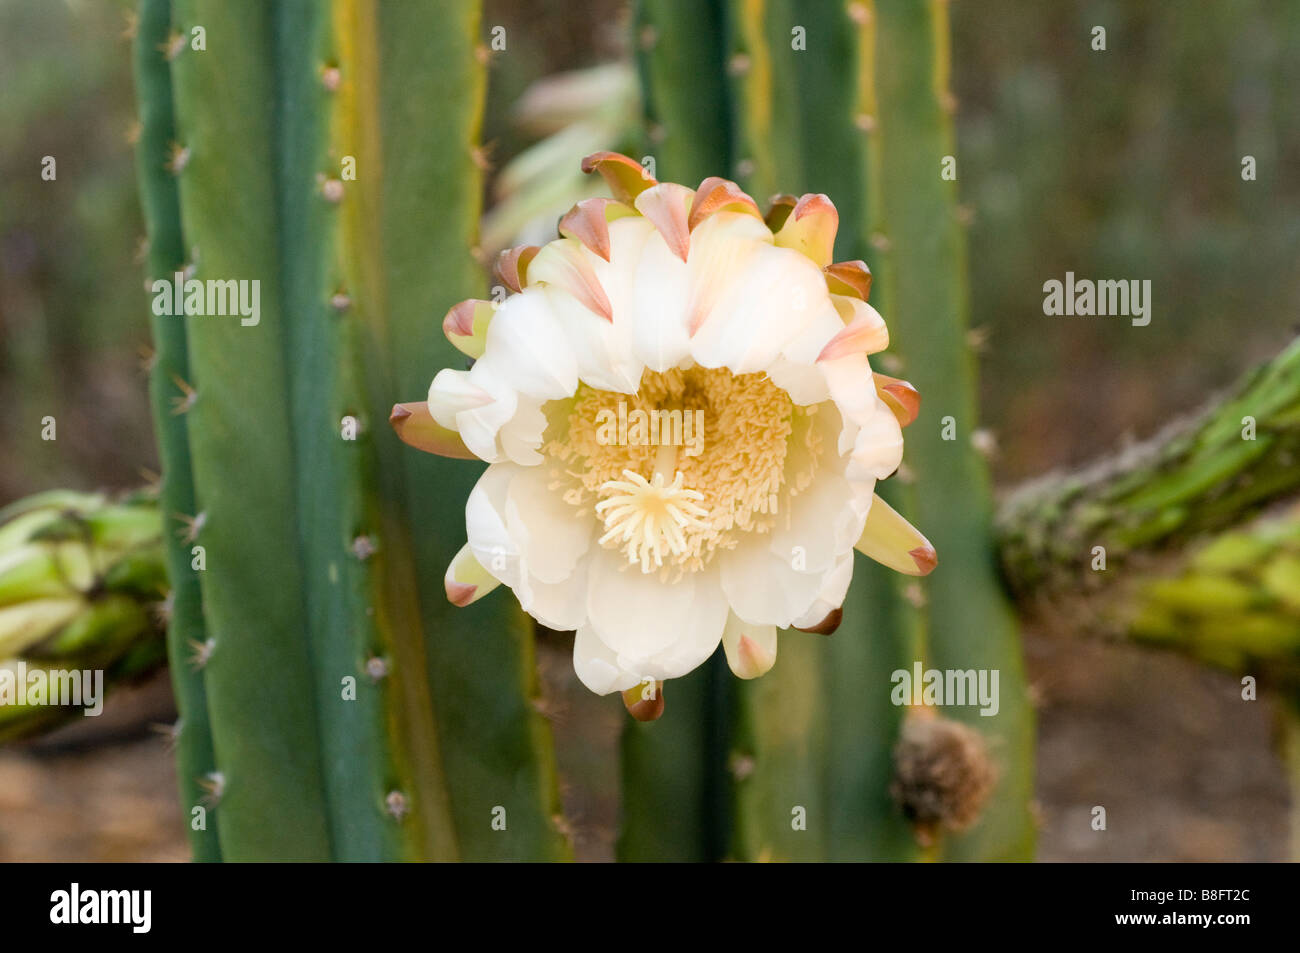 The Bloom Of A San Pedro Cactus Stock Photo 22475780 Alamy